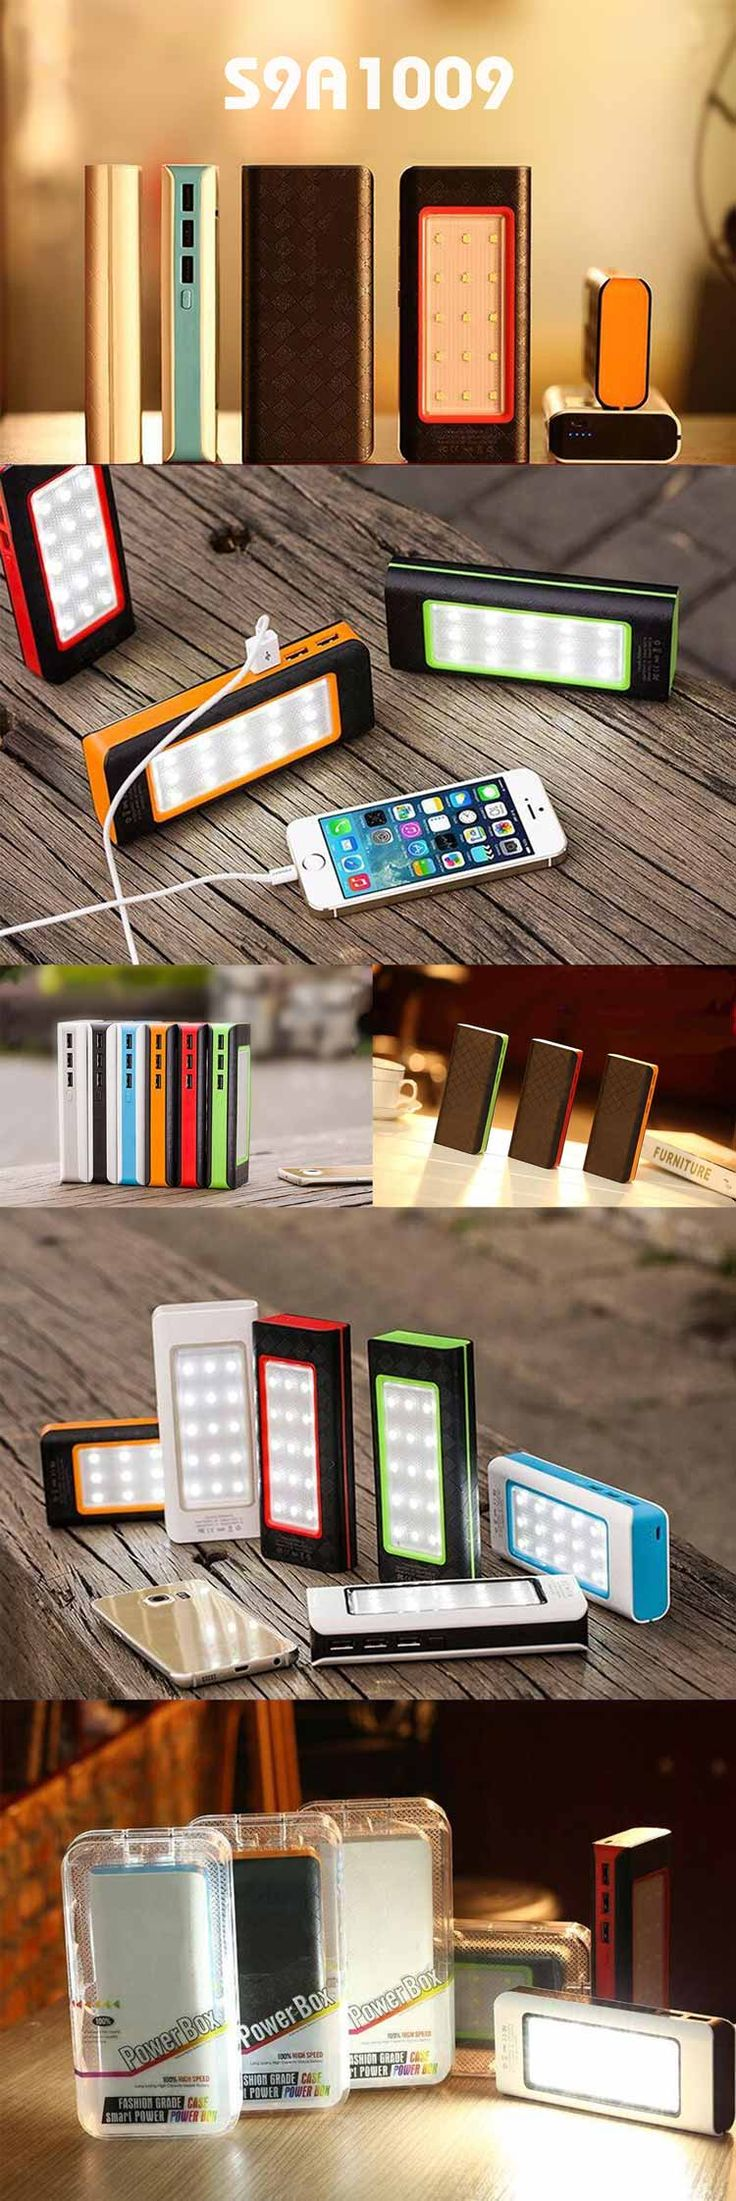 10000mAh Power Bank with Camping Lamp  Description:  1. Could be used as a camping lamp with 15 high-brightness Leds 2. Could charge three devices at the same time with 3 USB ports 3. Input: 5V/1A 4. Output: 5V/2A 5. Capacity: 10000mAh 6. Material: ABS 7. Size: 14*6.2*2.5cm www.ideagroupigm.com